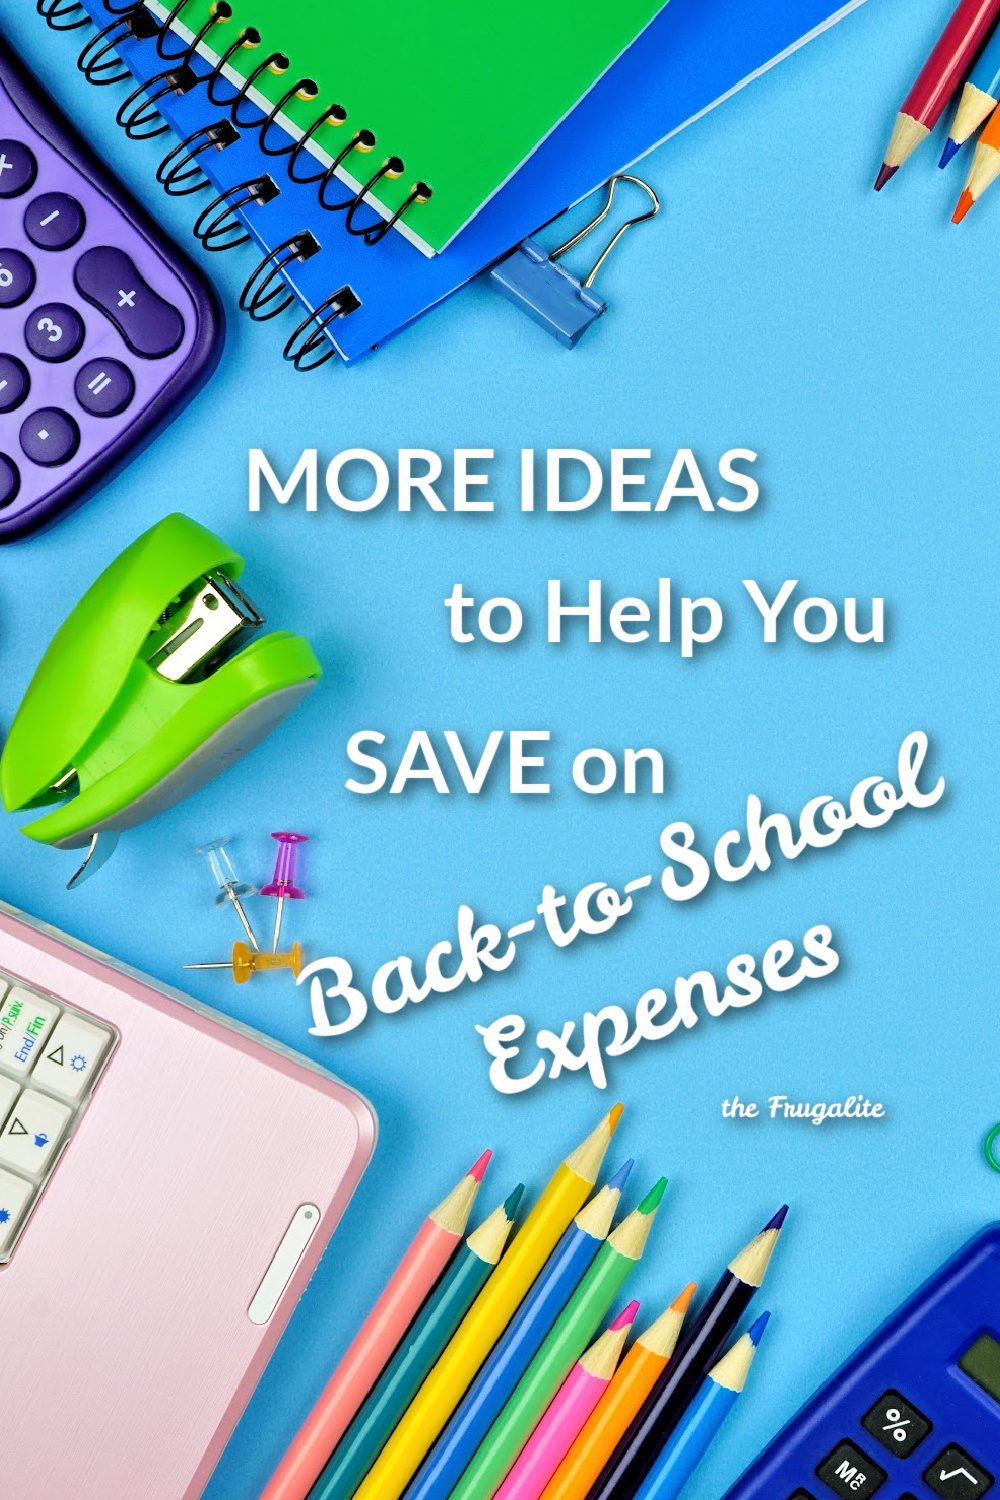 12 MORE Back to School Hacks for Frugal Families